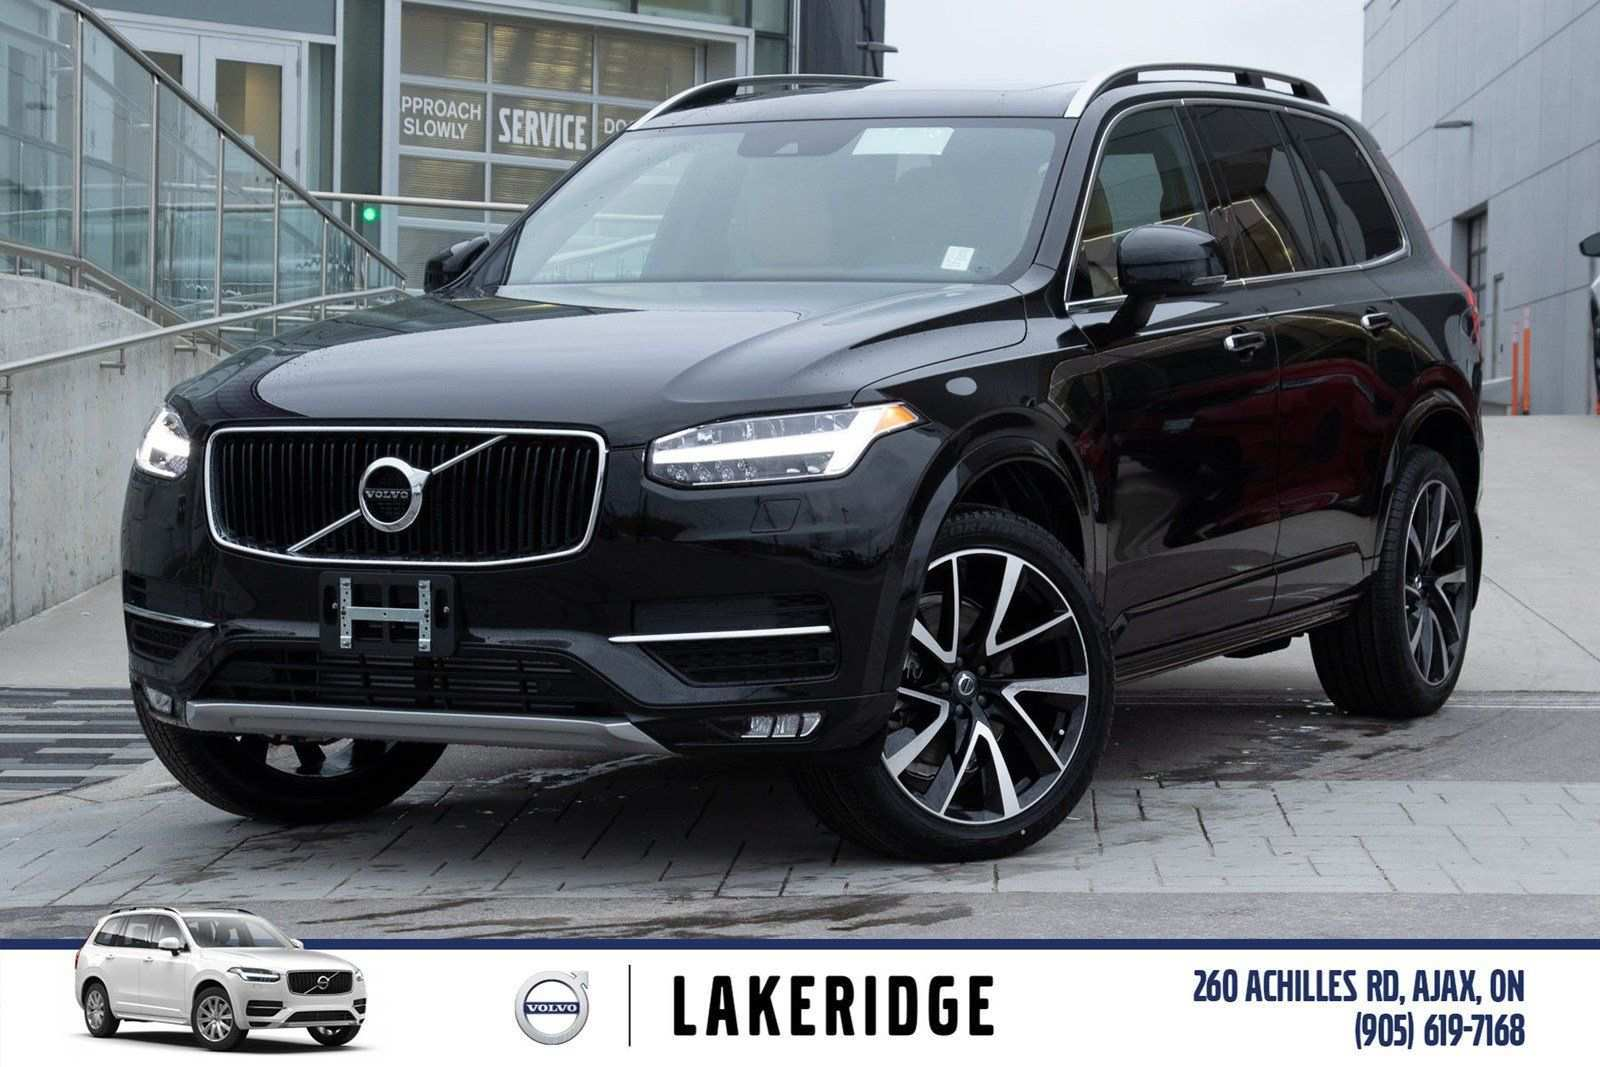 21 New The Volvo Xc90 2019 New Features Release Pricing for The Volvo Xc90 2019 New Features Release